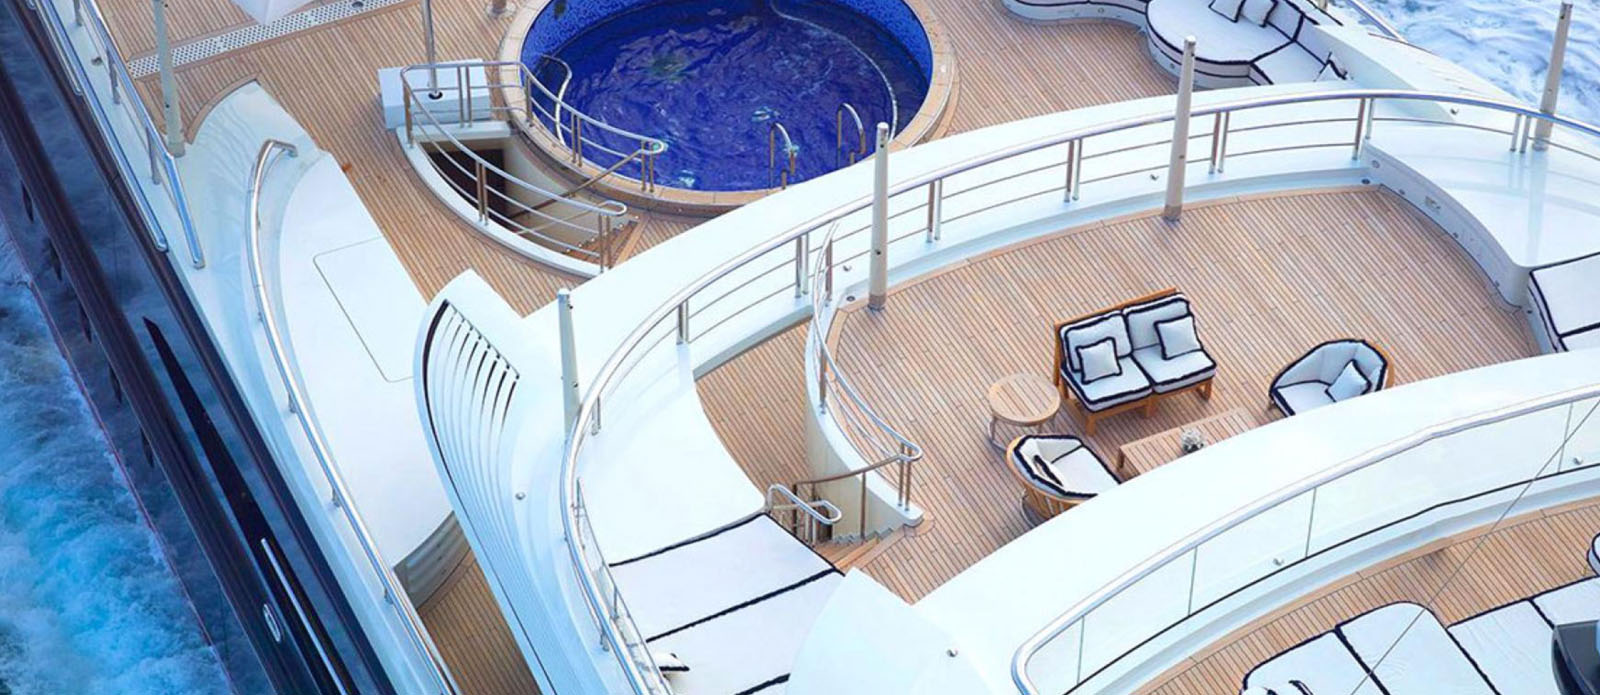 Tranquility - Aerial of Decks